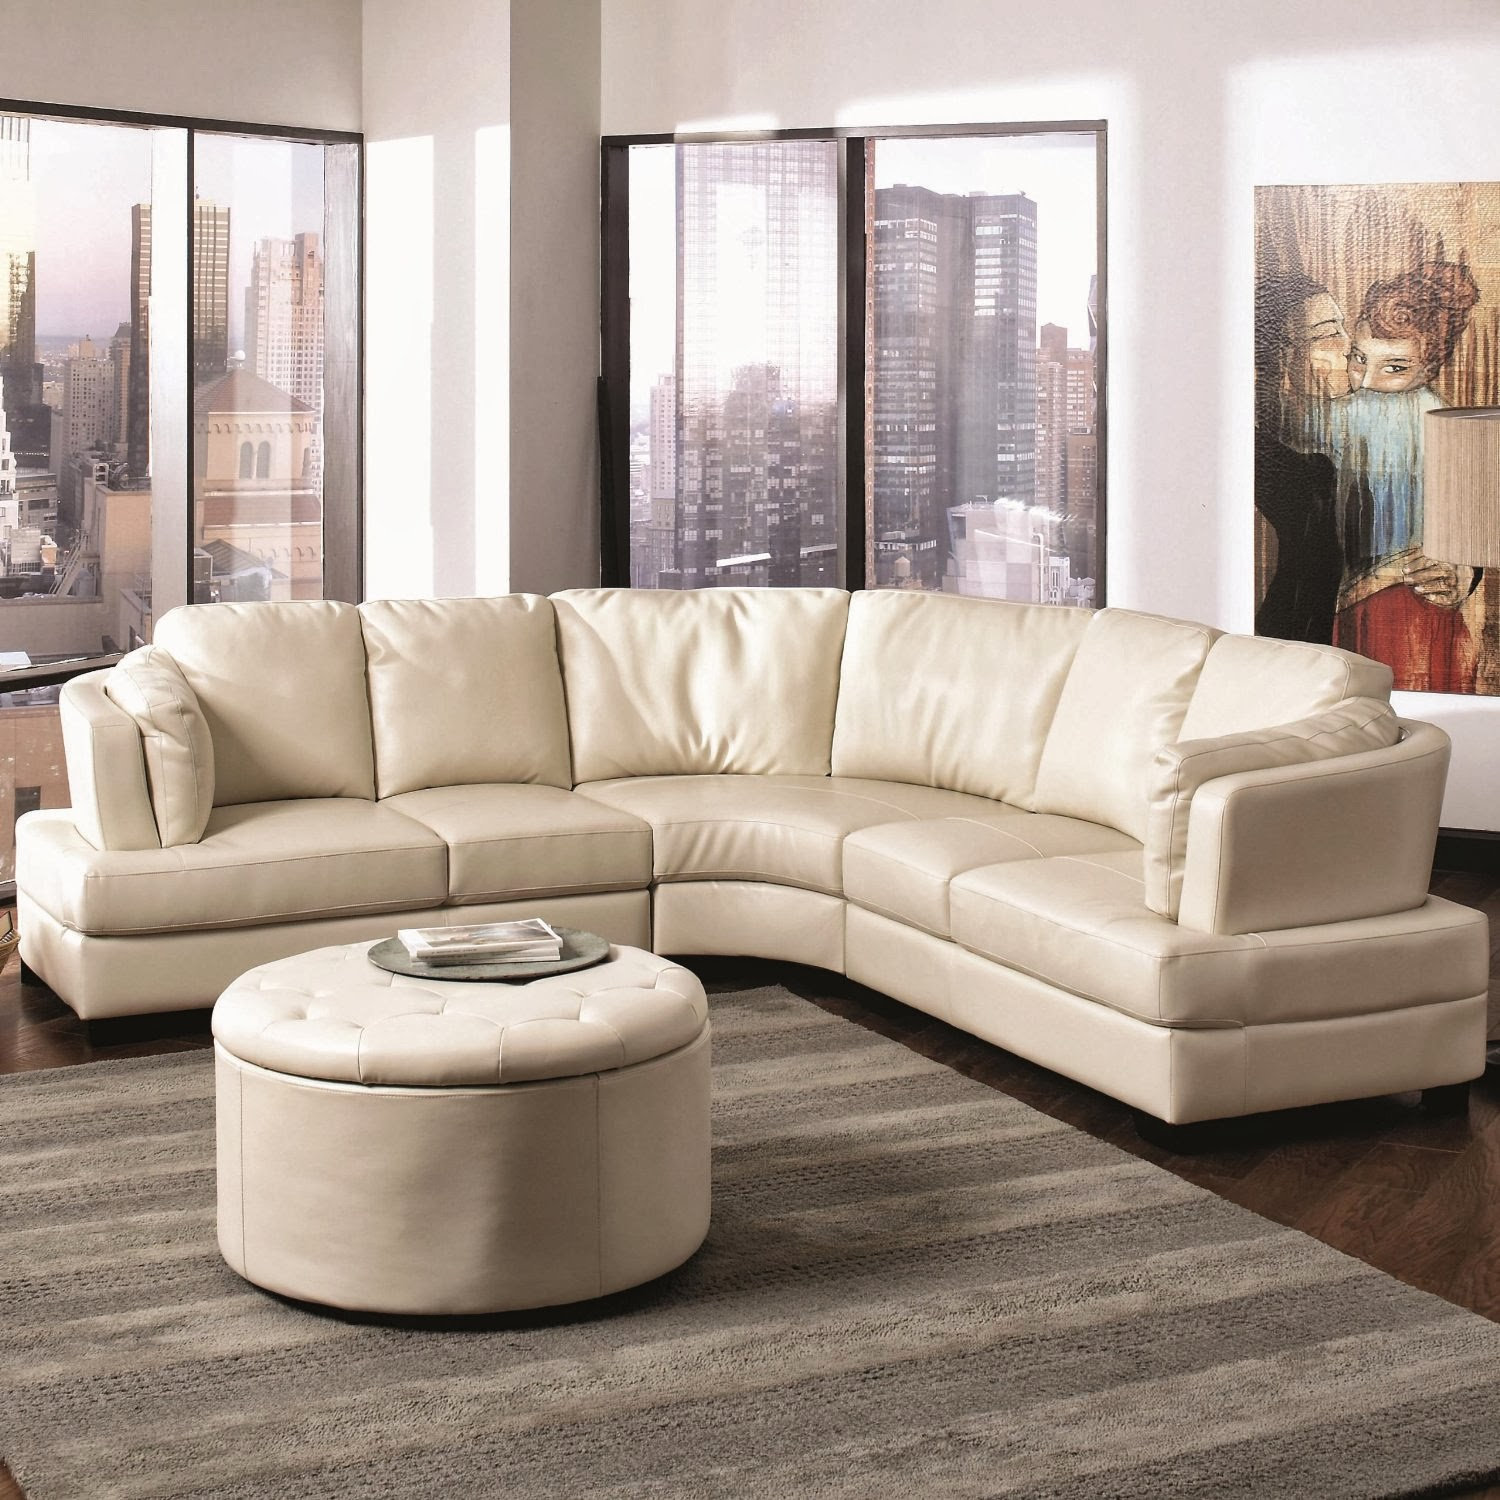 Amazon Sofa Rund Buy Curved Sofa Online September 2013